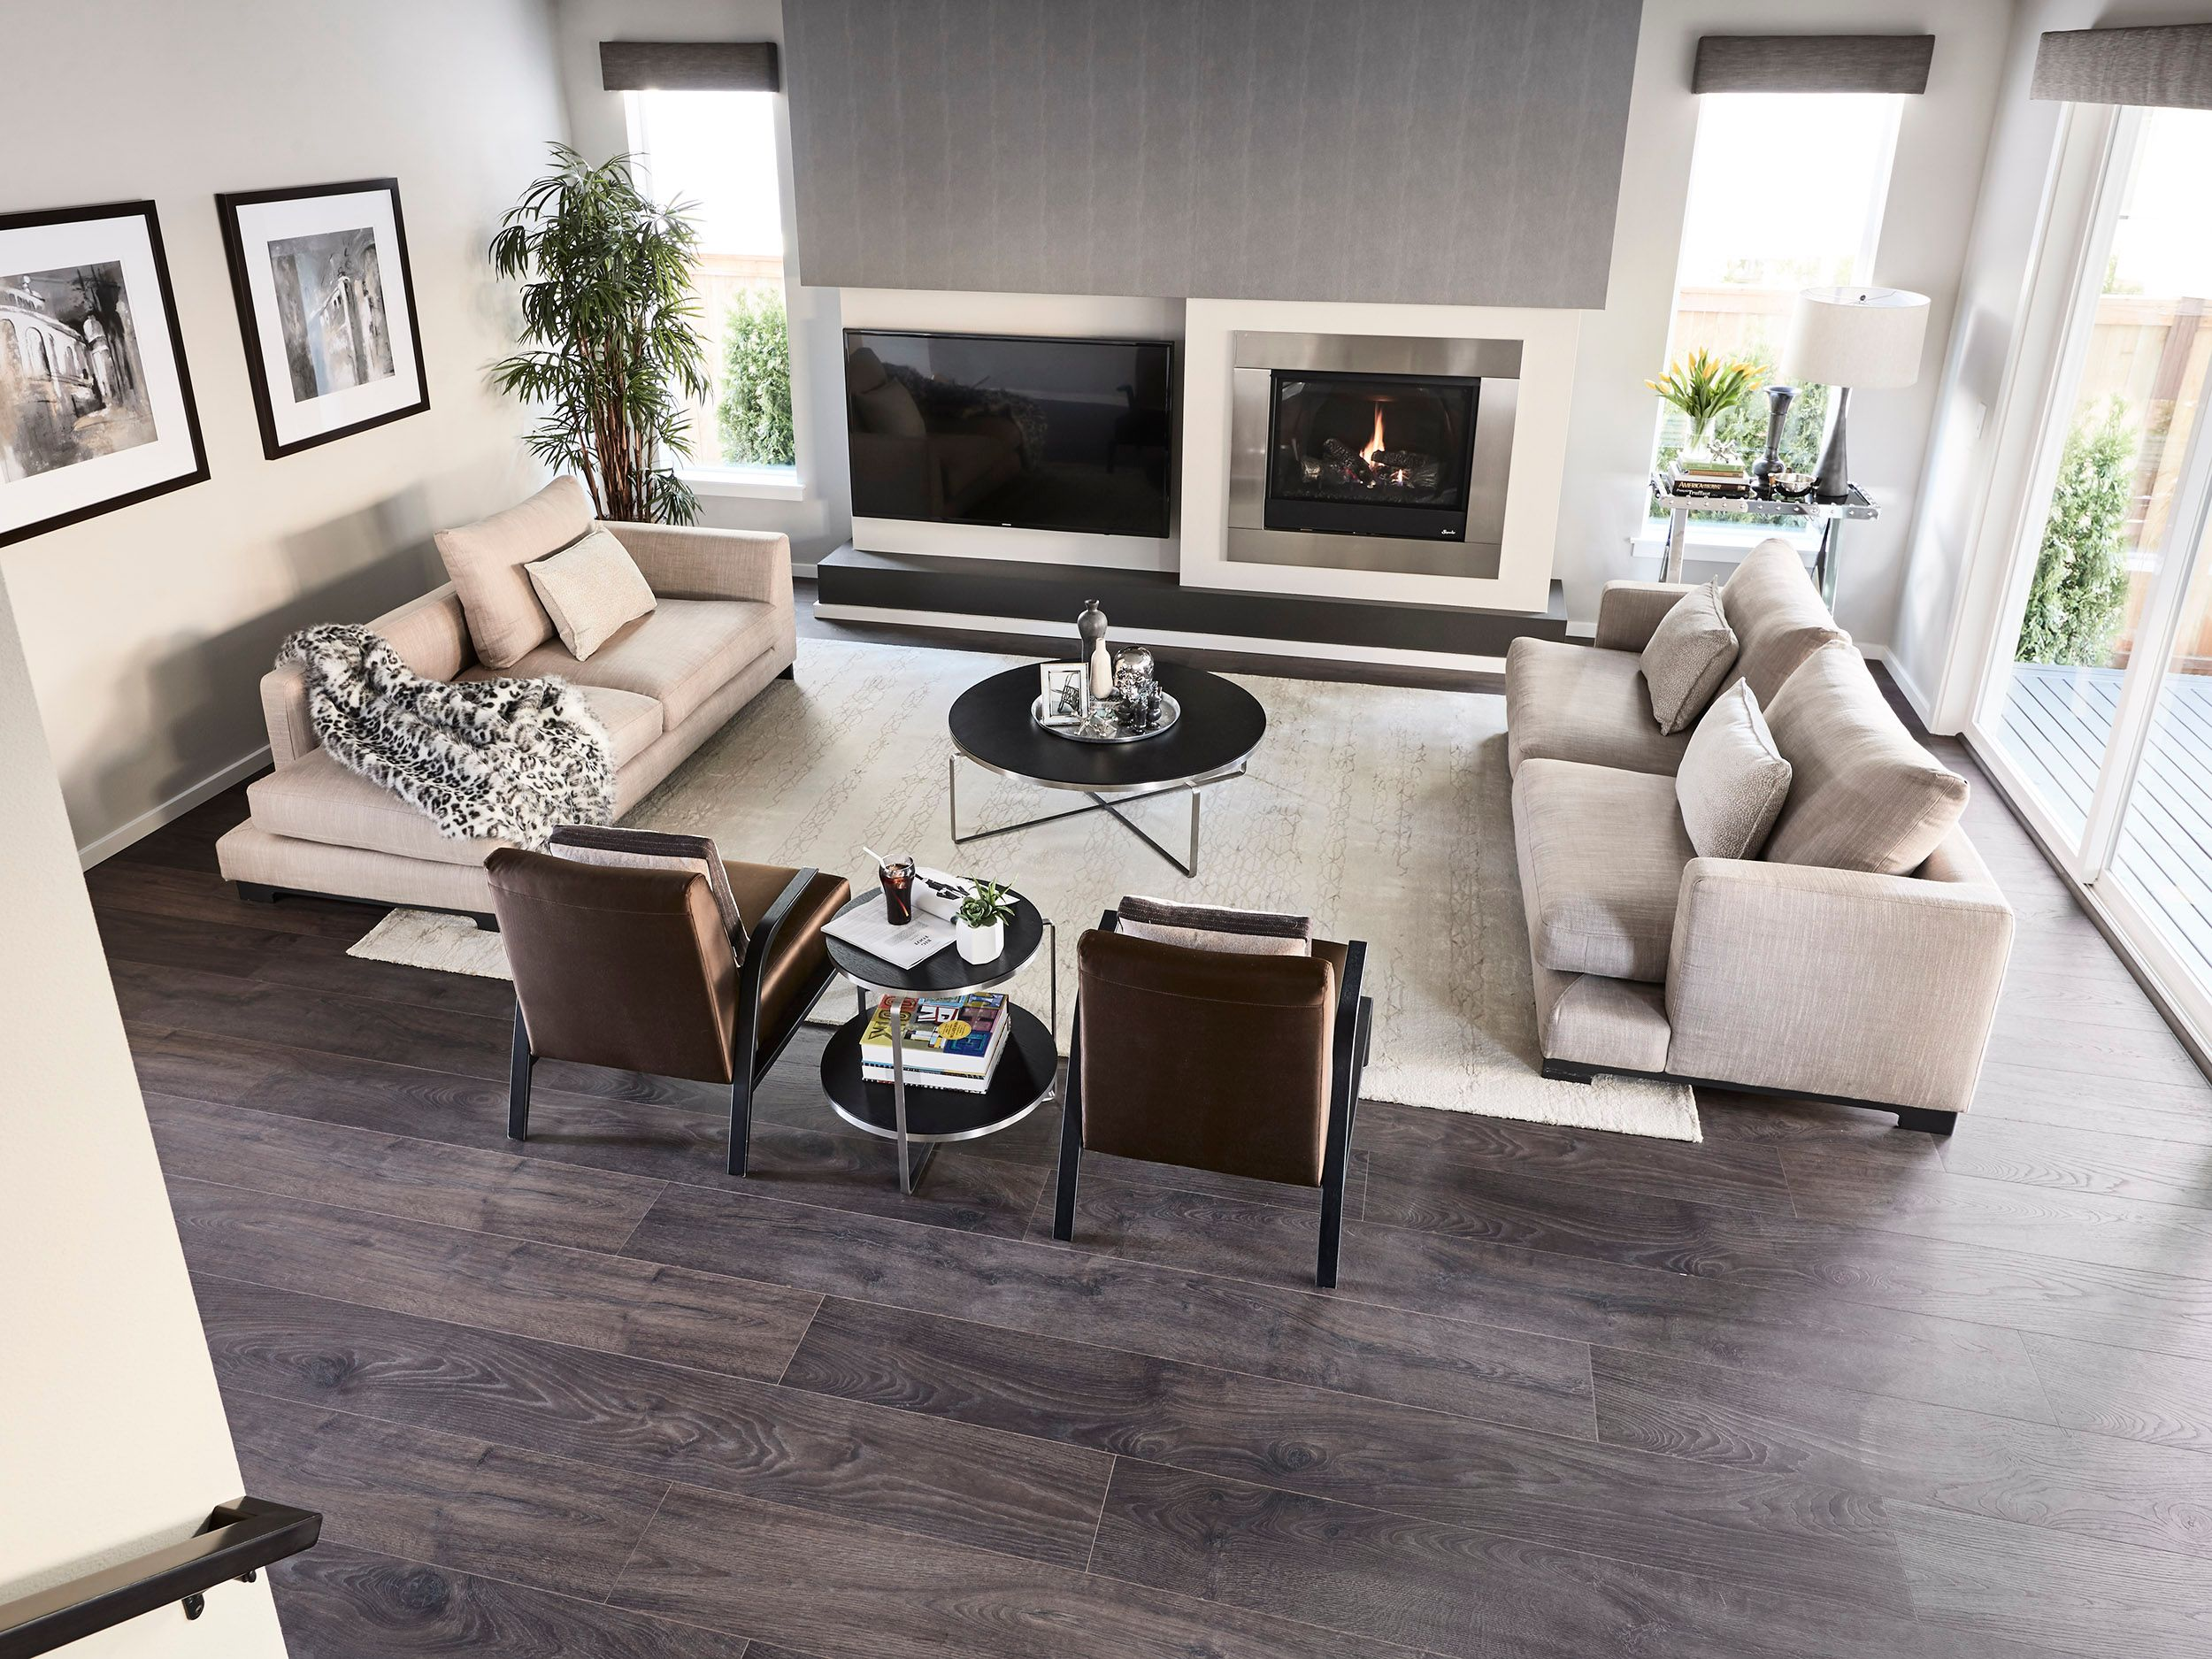 Living Area featured in the Hudson By MainVue Homes in Bremerton, WA